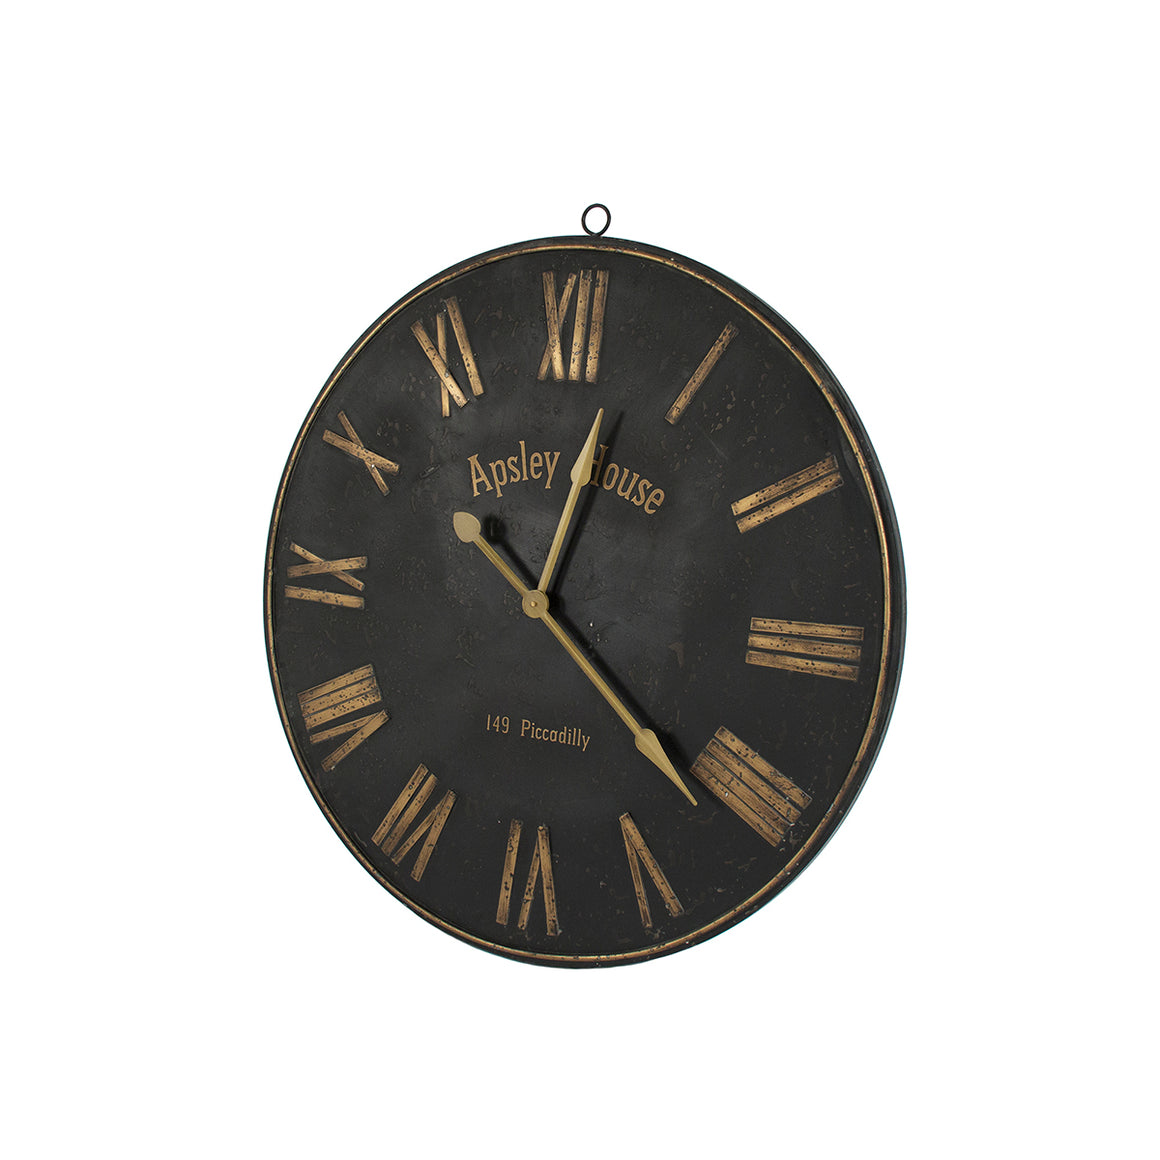 Apsley House Wall Clock